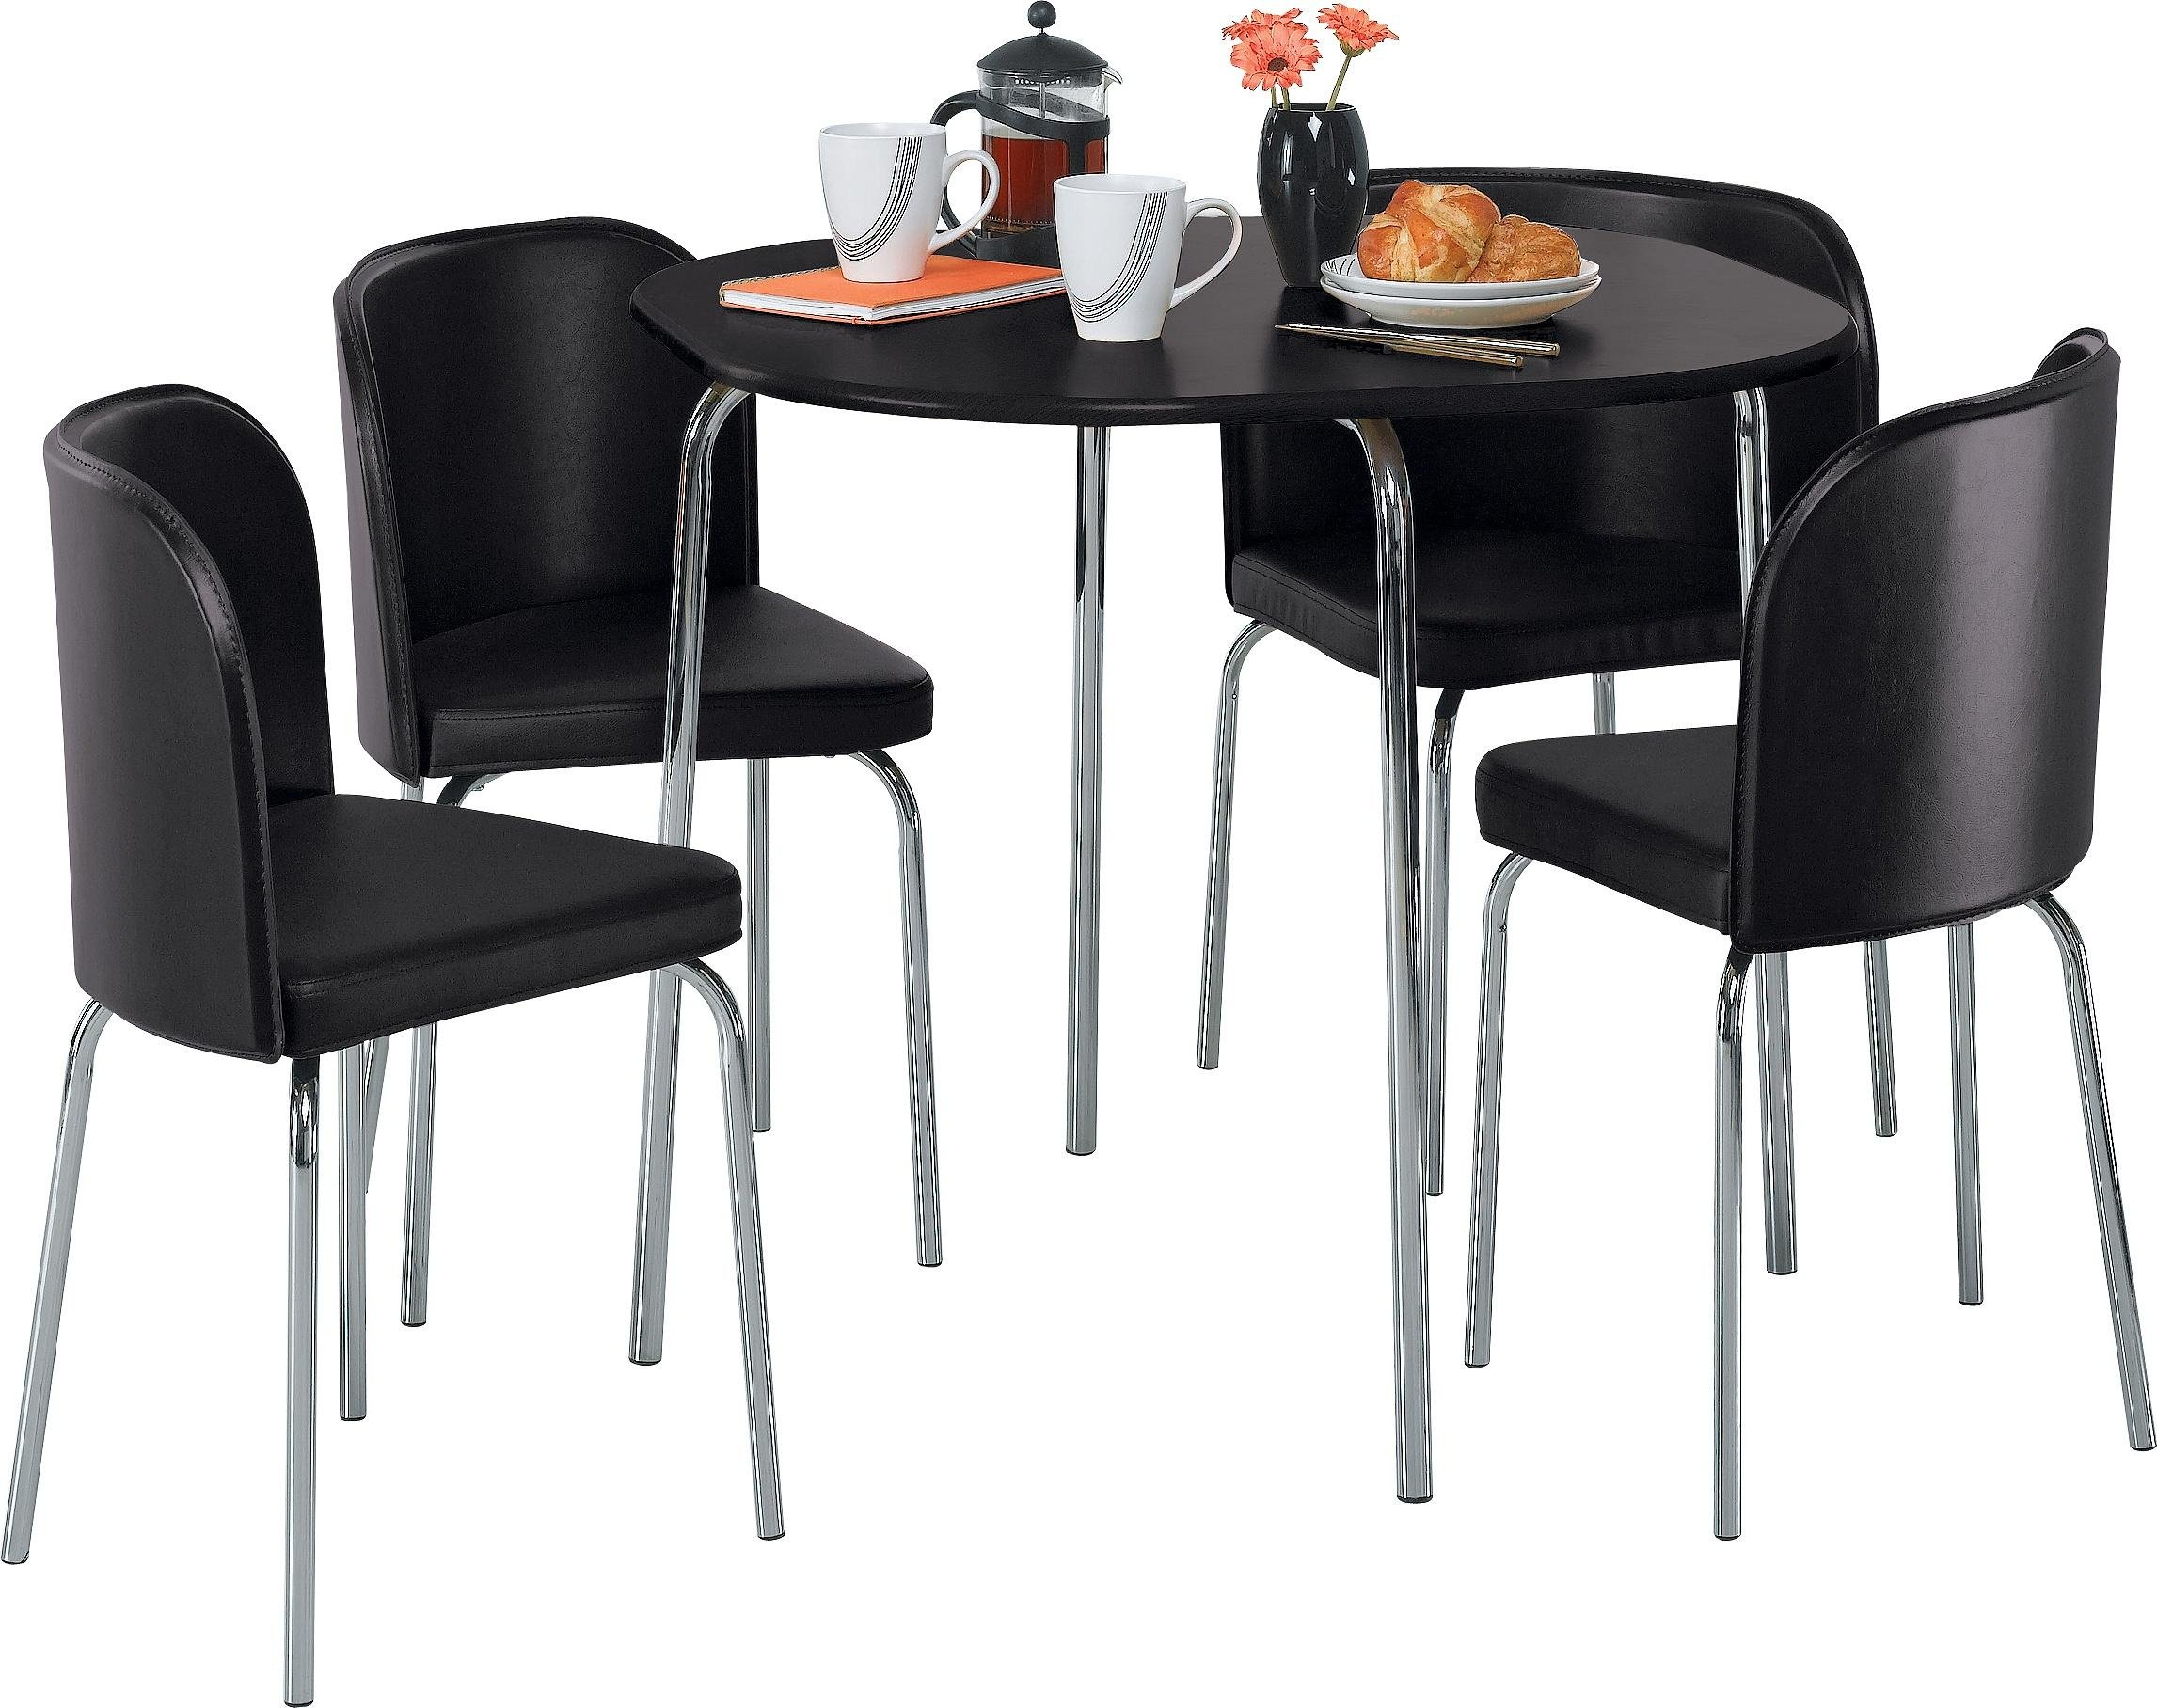 Buy Hygena Amparo Dining Table and 4 Chairs Black at  : 6001443RZ001AUC1154176Webampw570amph513 from www.argos.co.uk size 570 x 513 jpeg 32kB